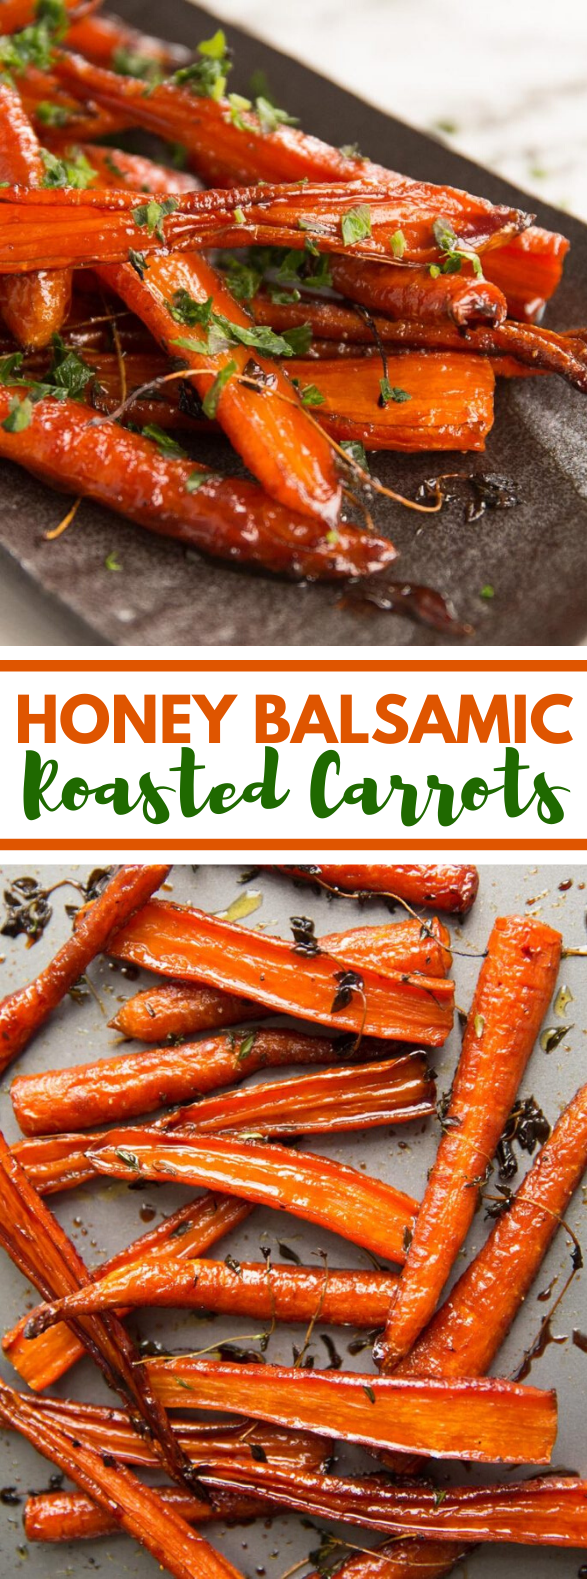 Honey Balsamic Roasted Carrots #vegetarian #dinner